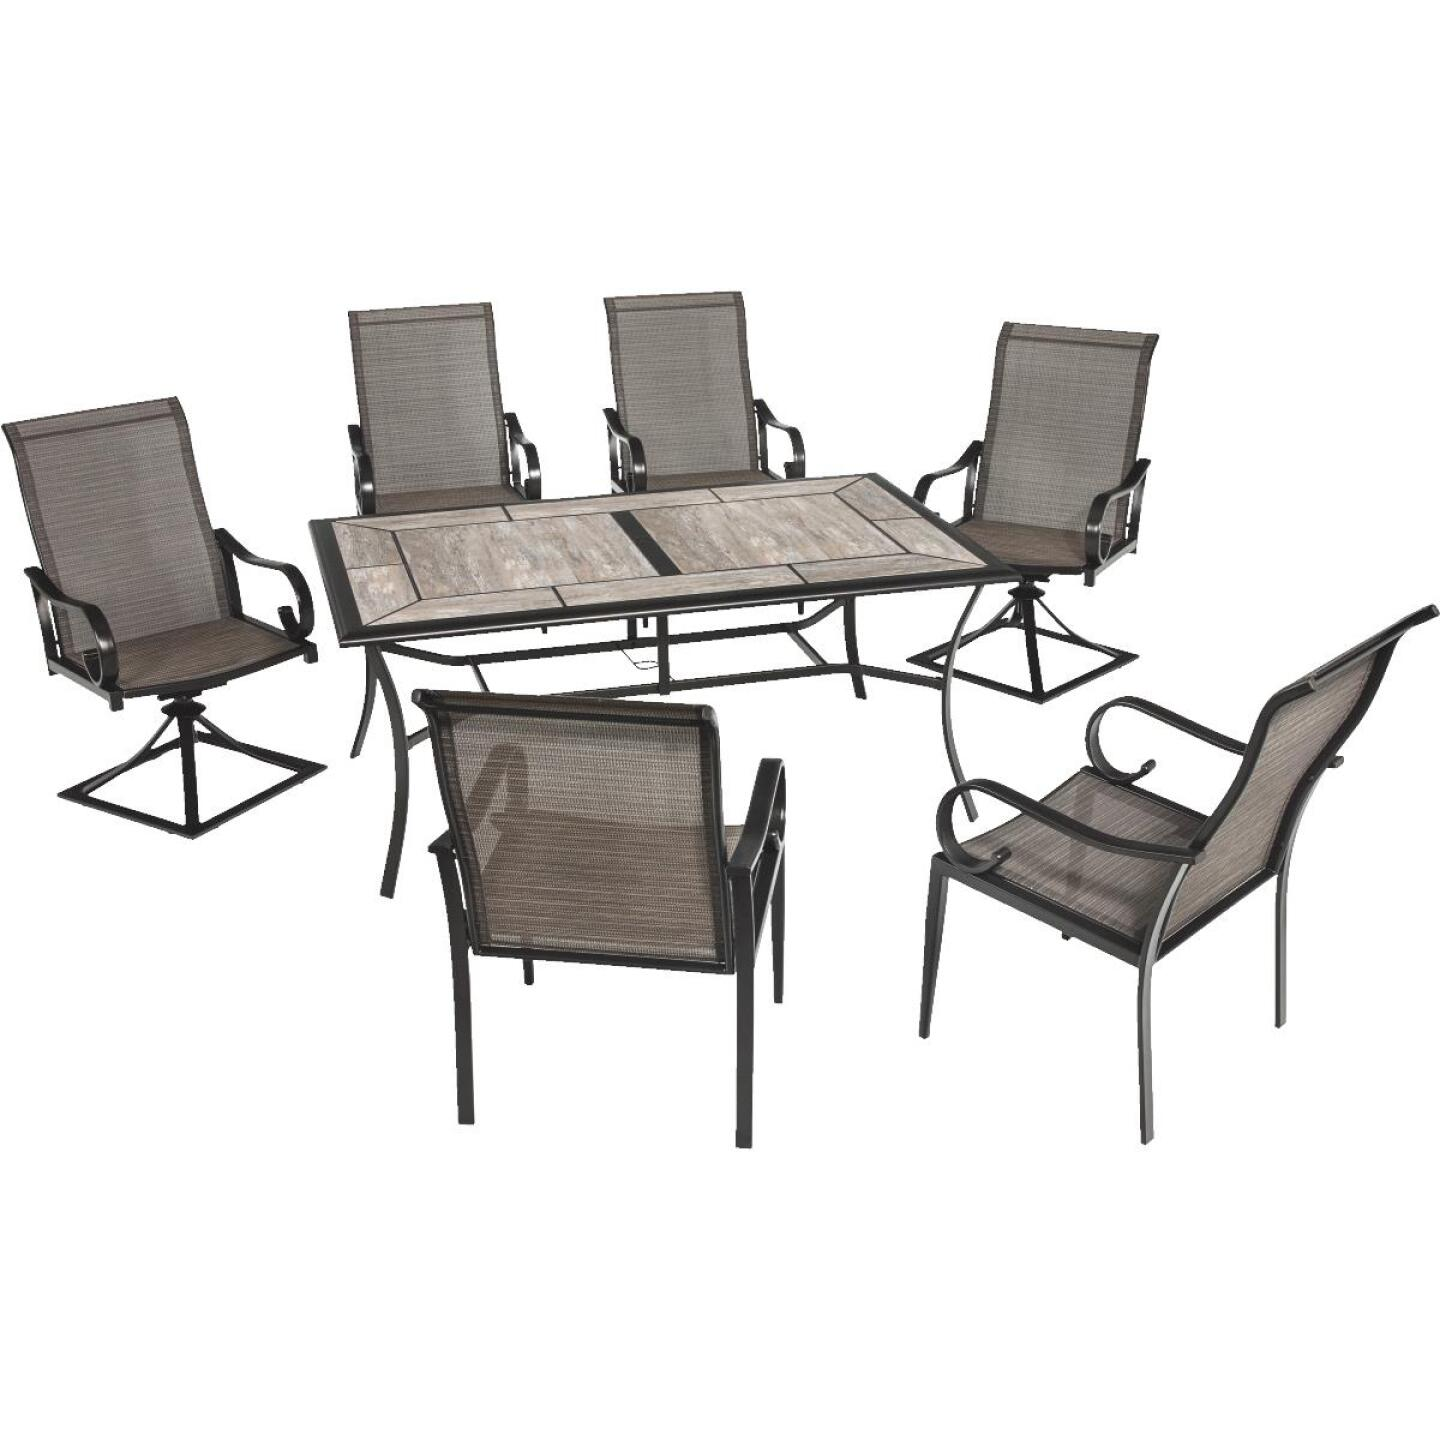 Outdoor Expressions Berkshire 7-Piece Dining Set Image 321